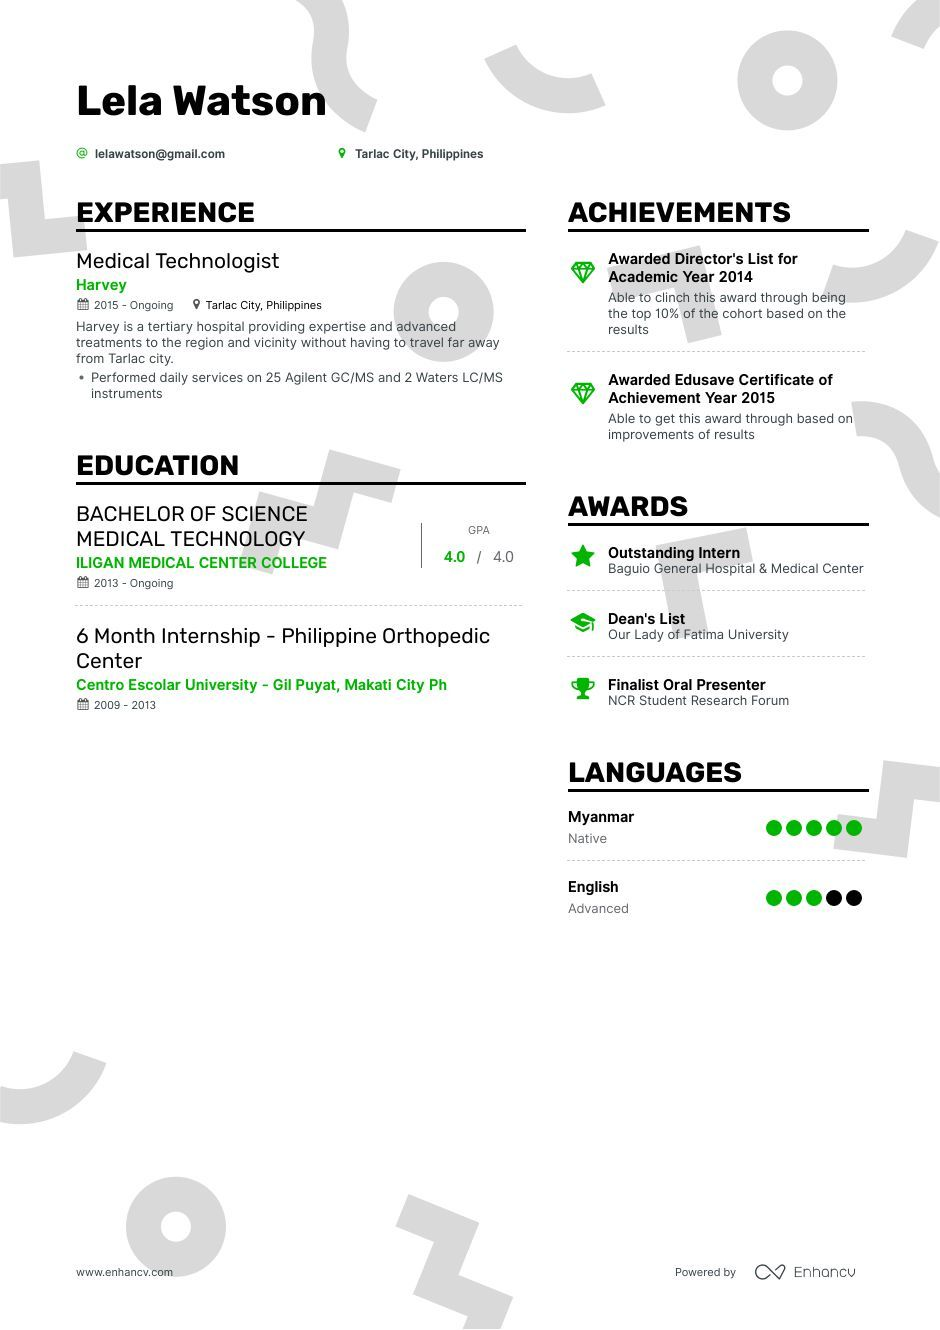 Medical Technologist Resume Example And Guide For 2019 Resume Examples Resume Guide Resume